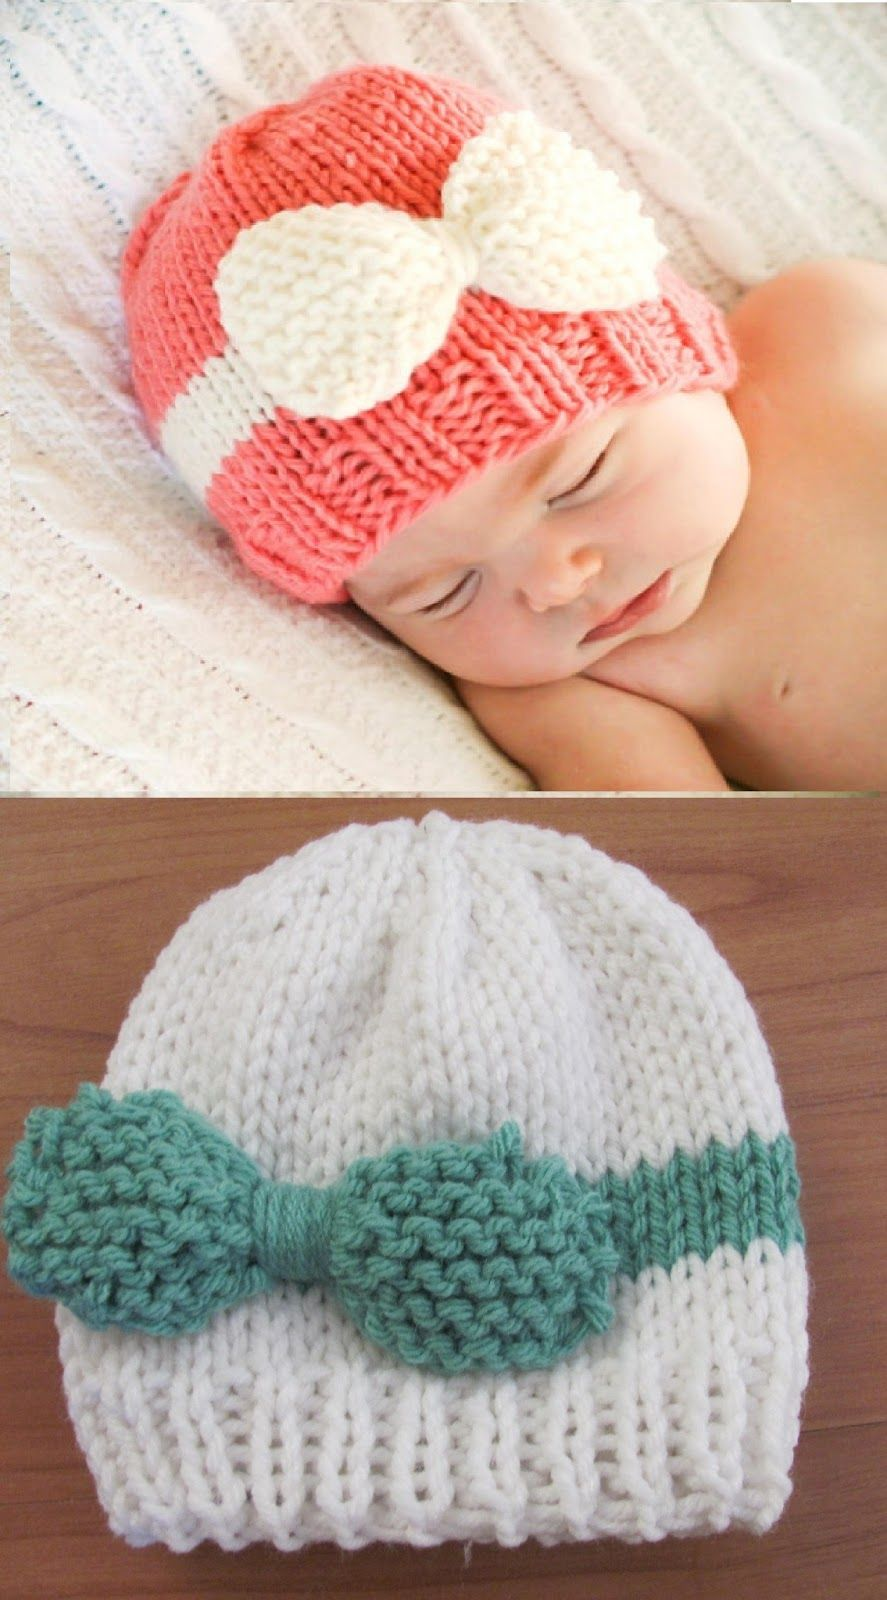 Knitting hats with knitting needles is a lot of the freshest ideas for men, women, young girls and even kids